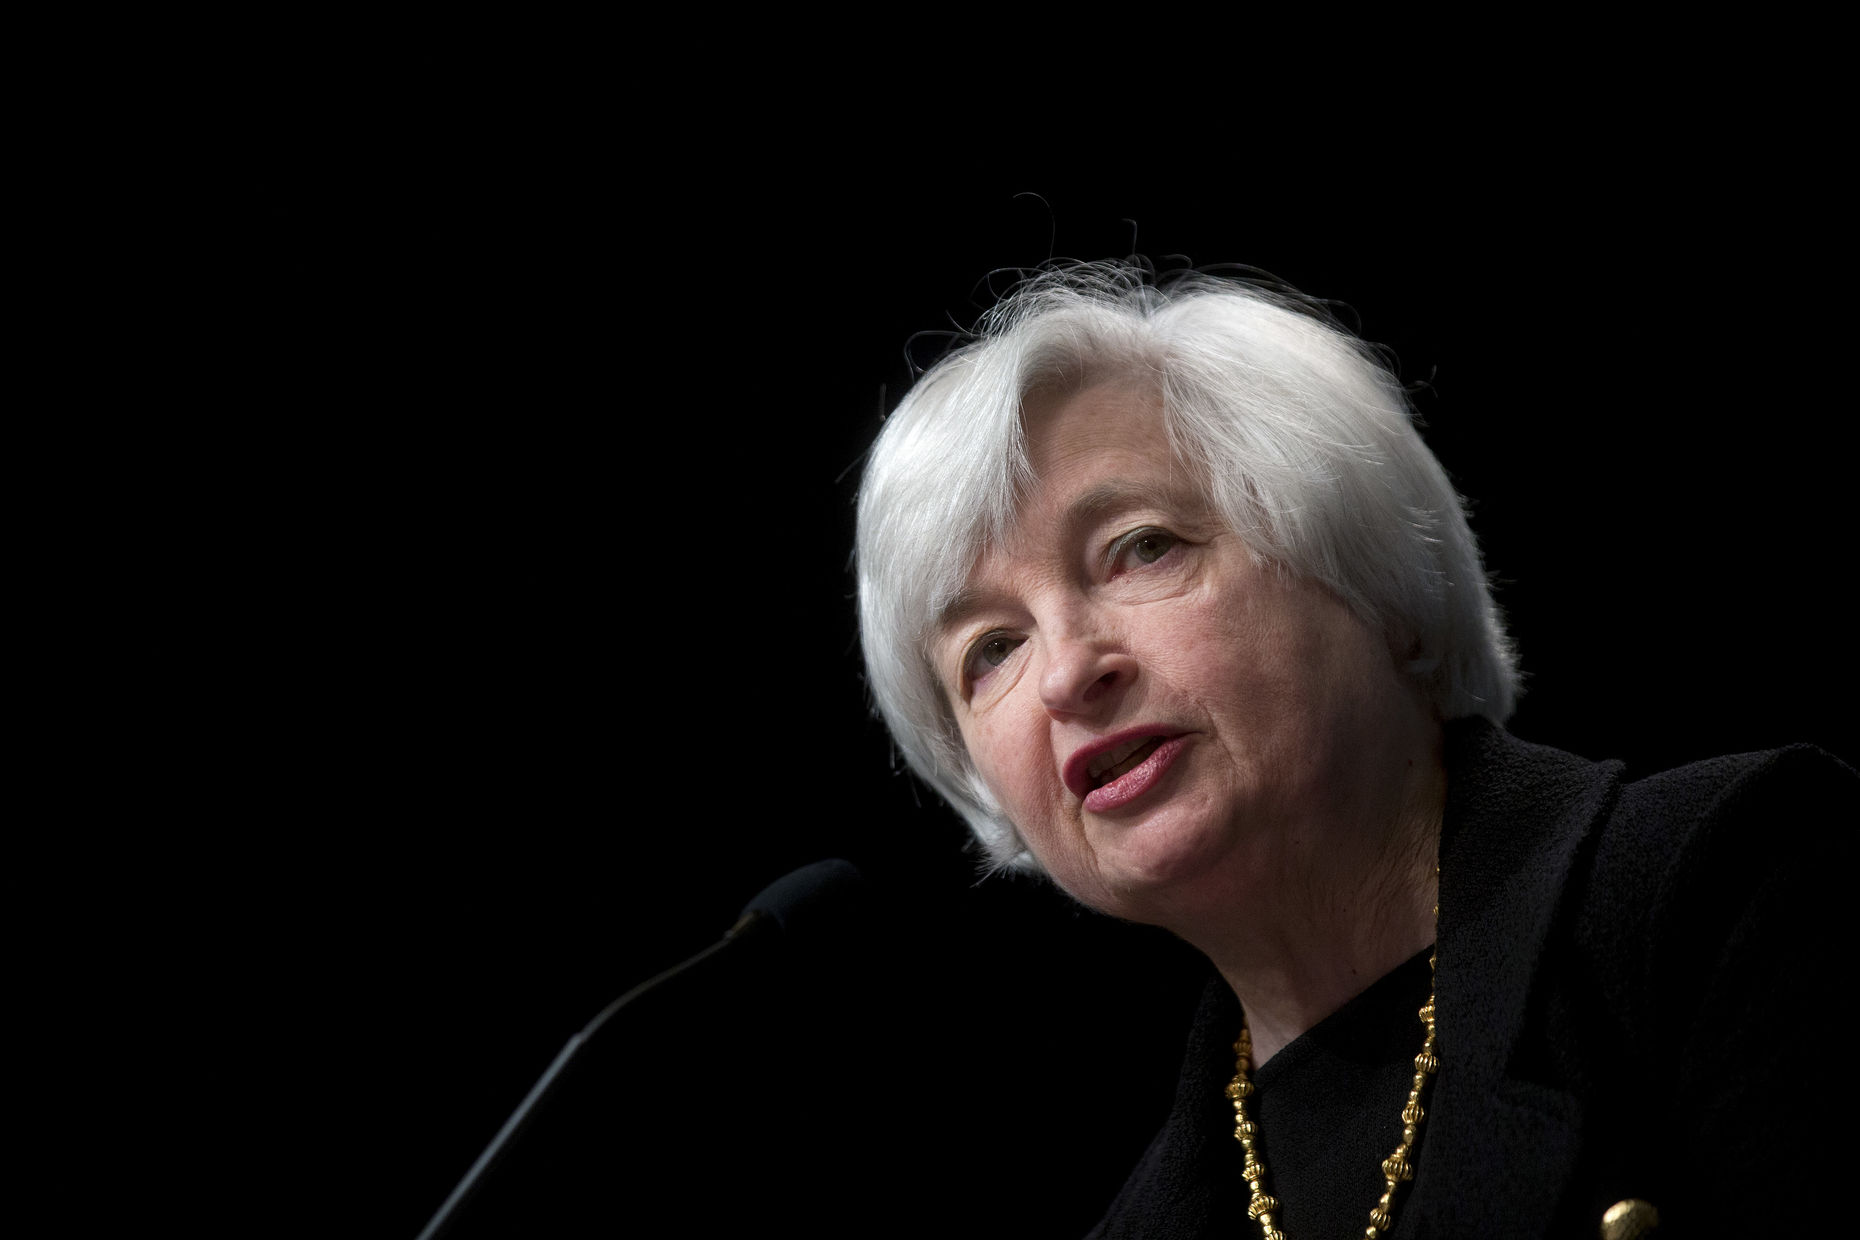 Federal Reserve Chair Janet Yellen. Photo by Bloomberg.